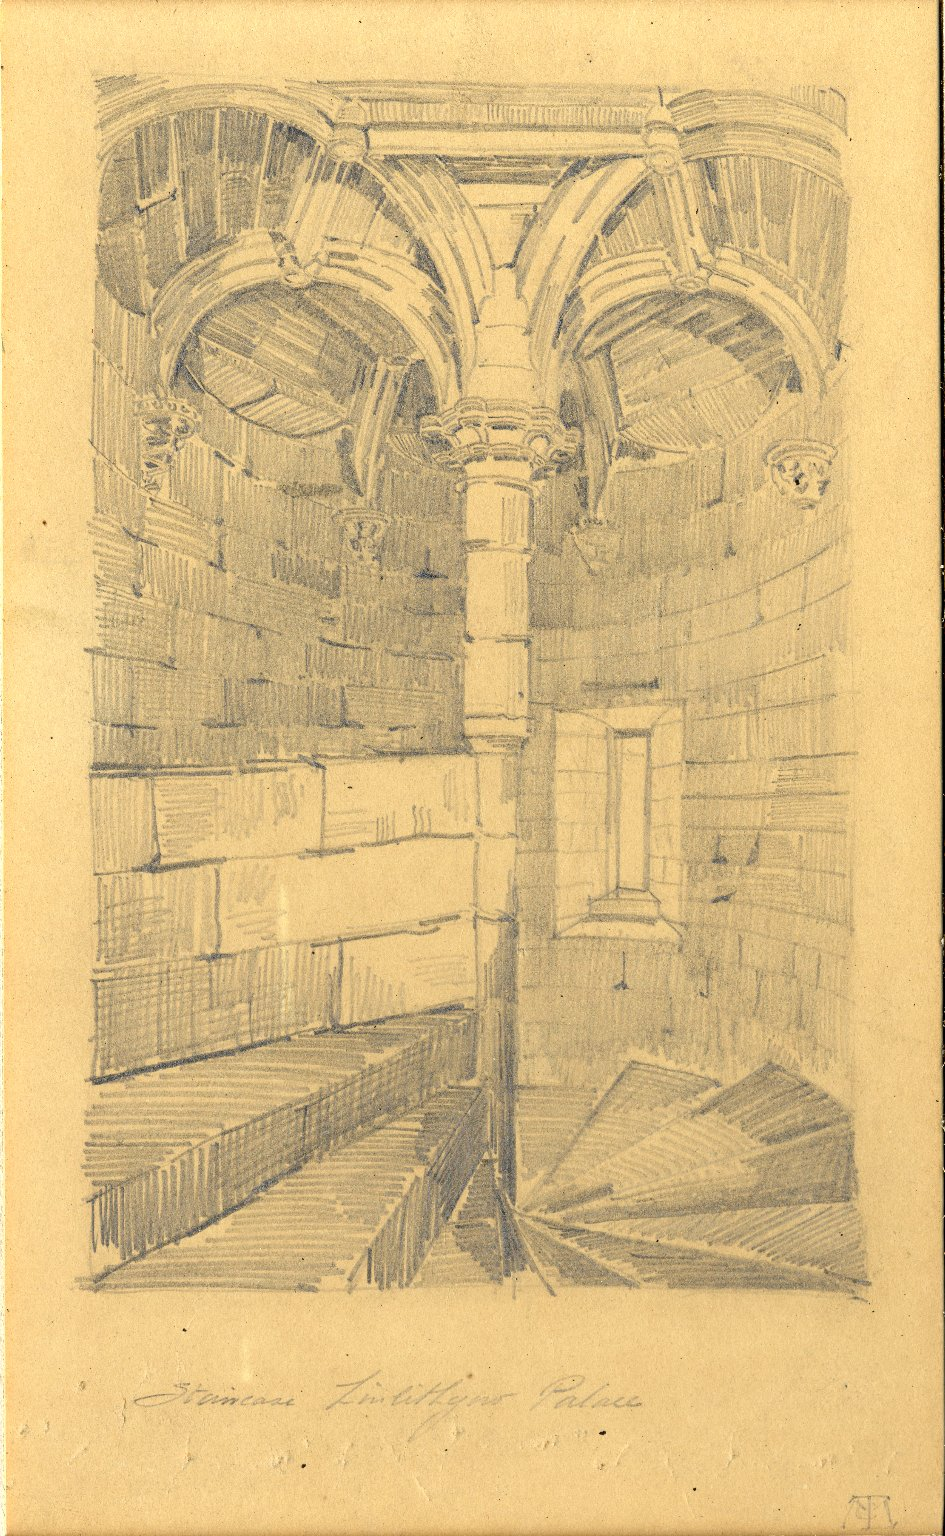 Staircase of Linlithgow Palace